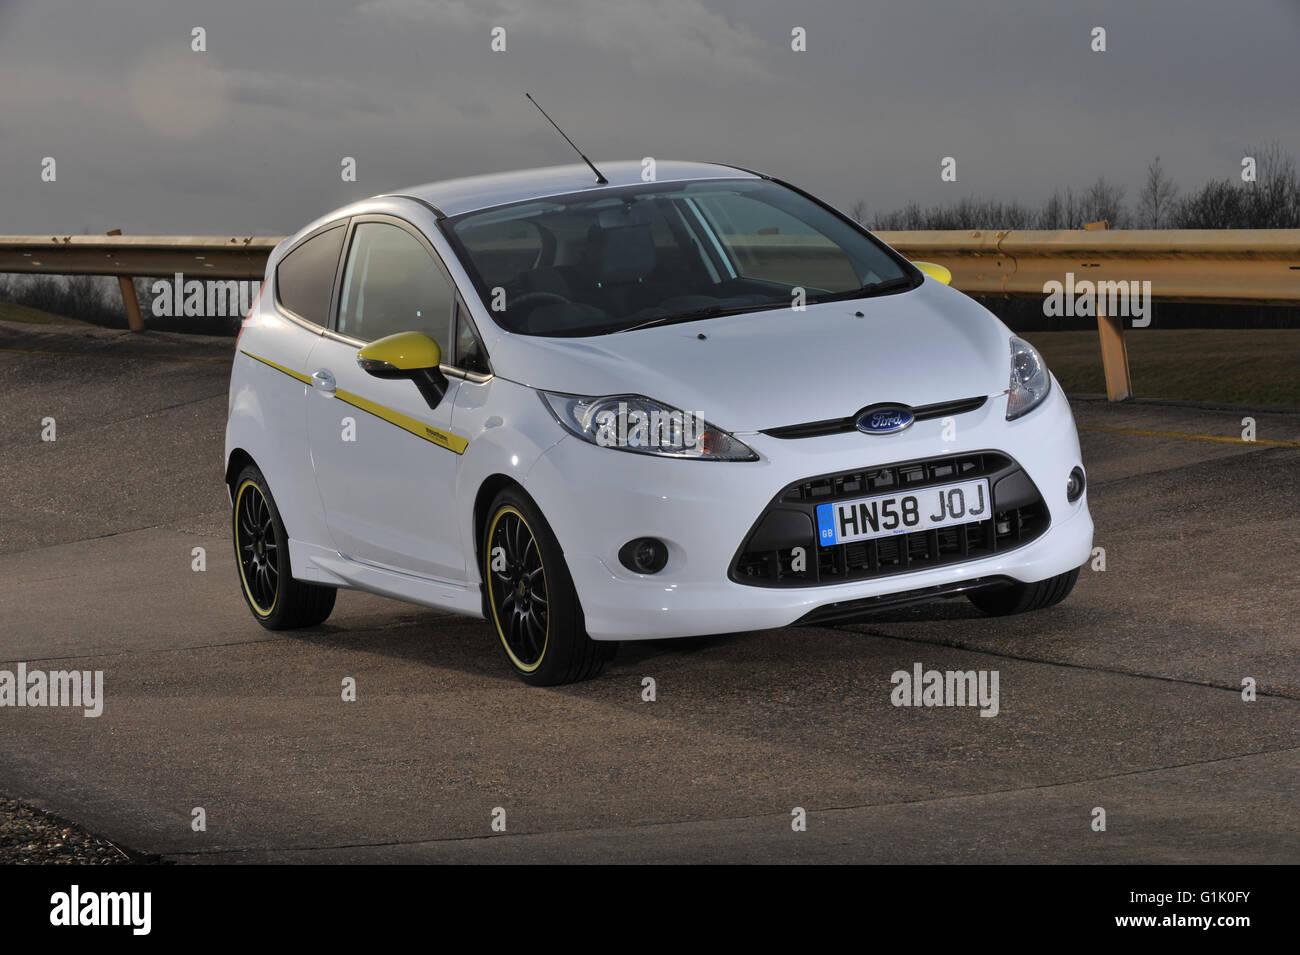 Ford Fiesta St High Resolution Stock Photography And Images Alamy